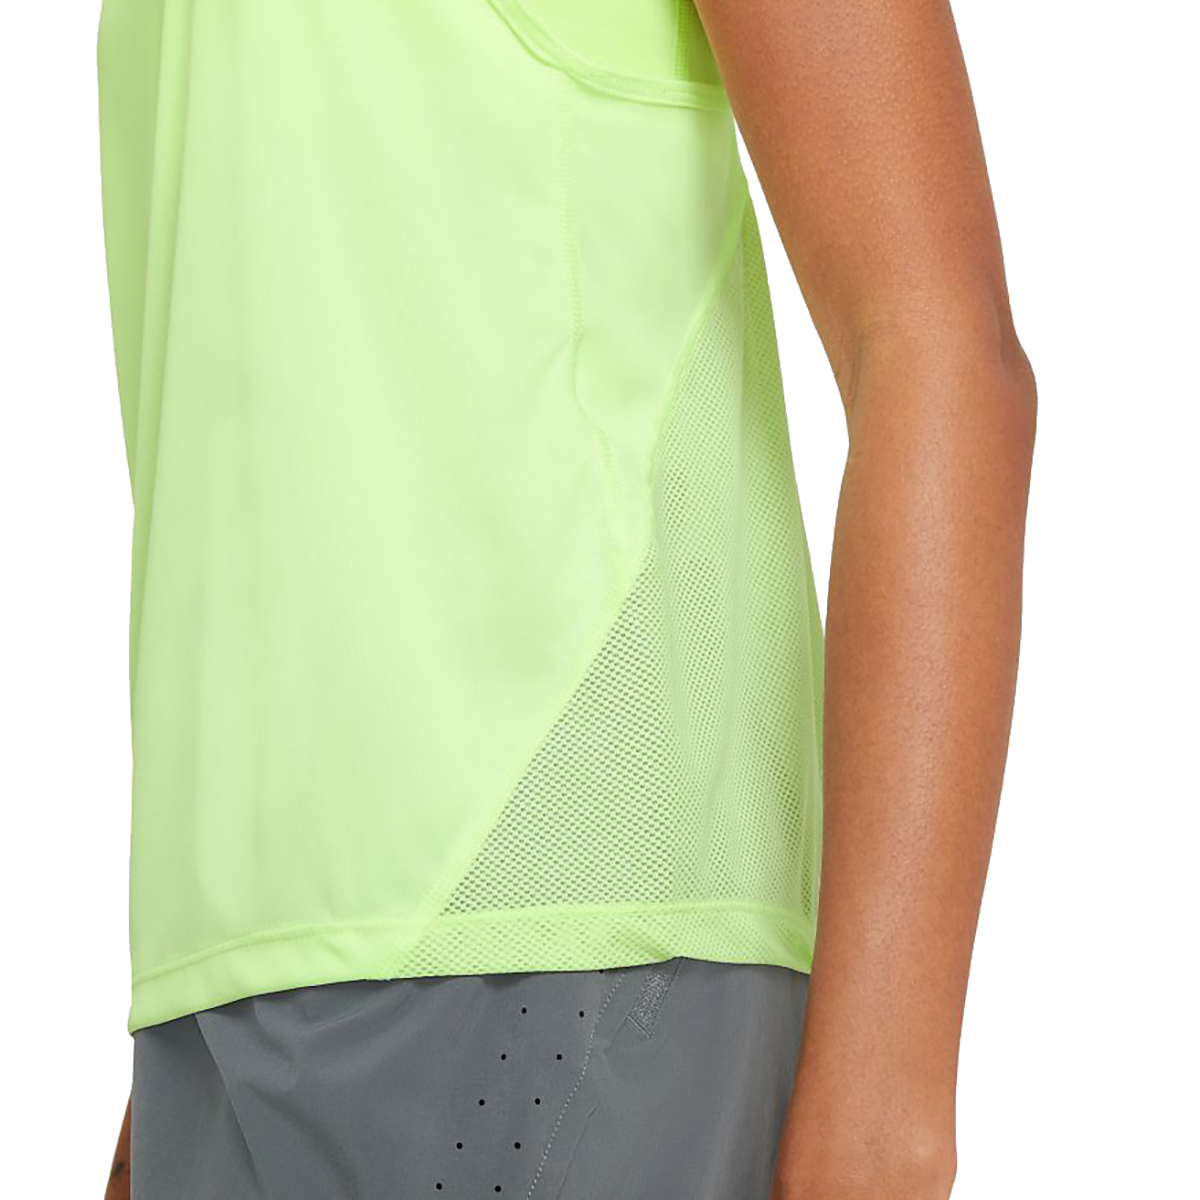 Women's Nike Miler Women's Running Singlet - Color: Barely Volt/Reflective Silver - Size: XS, Barely Volt/Reflective Silver, large, image 4